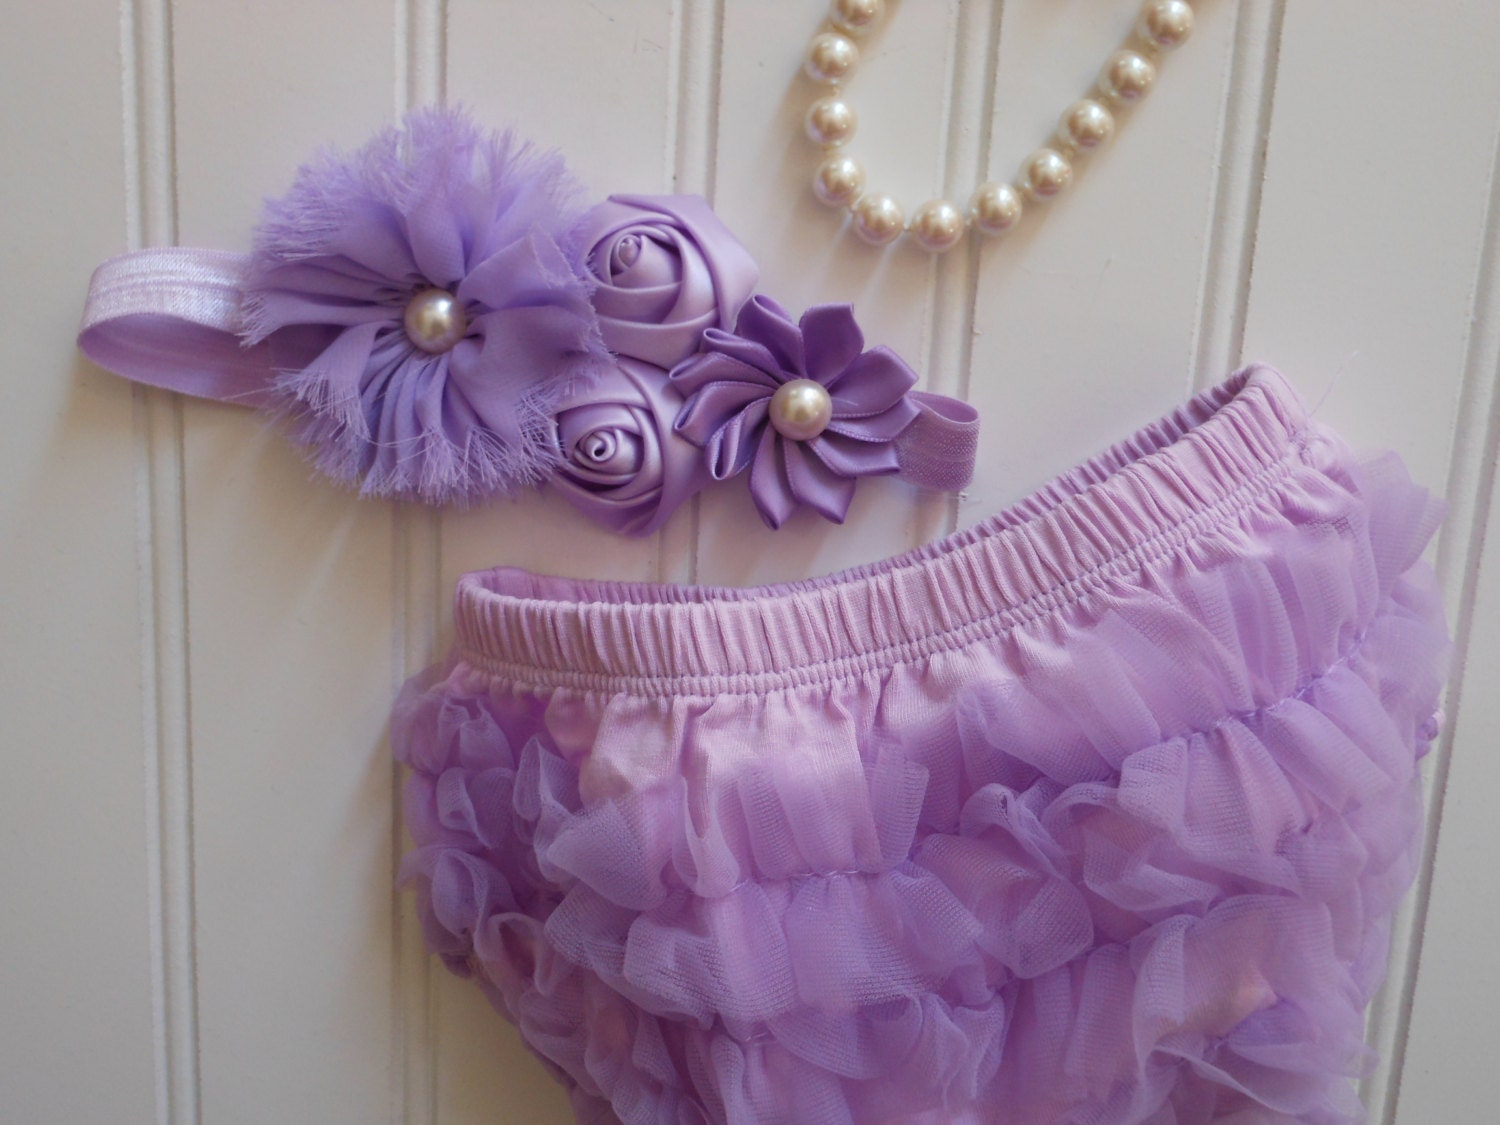 Bloomer Set-Lovely in Lavender Pearl Head Band with Matching Lavender Chiffon Ruffle Bloomers-Baby Shower Gift - TheRuffledbum